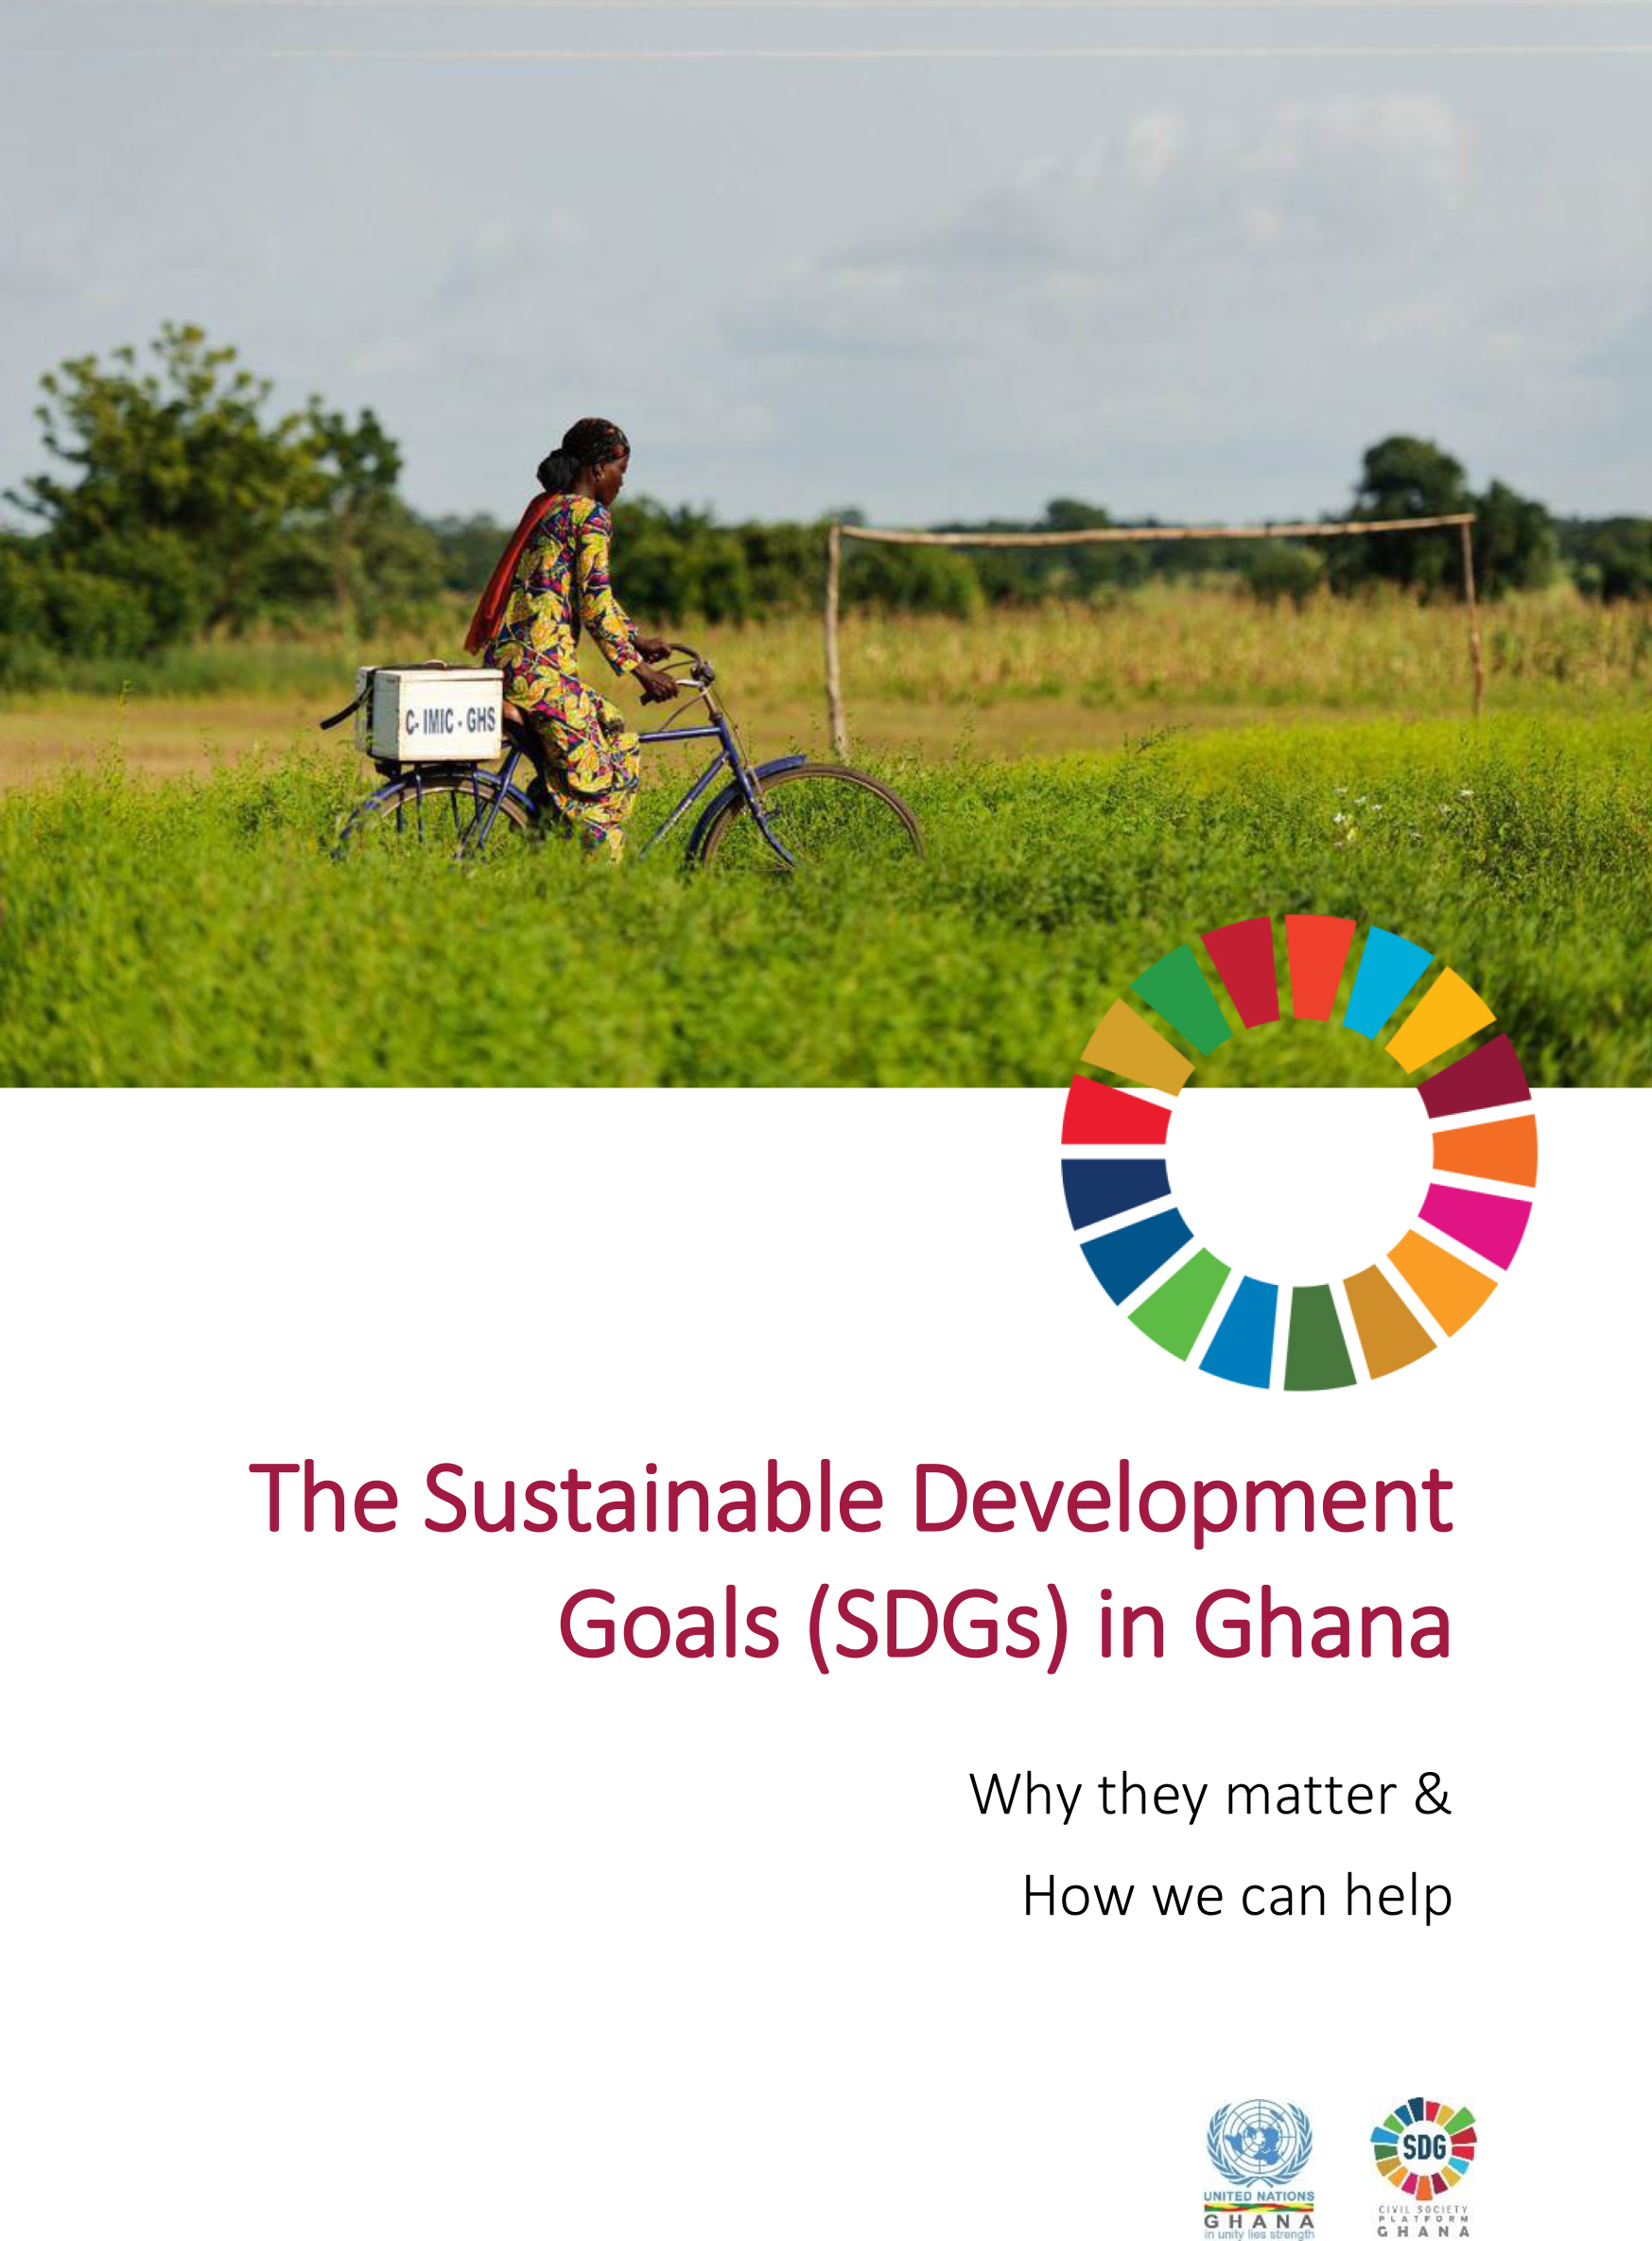 SDGs in Ghana: Why they matter and How can we help